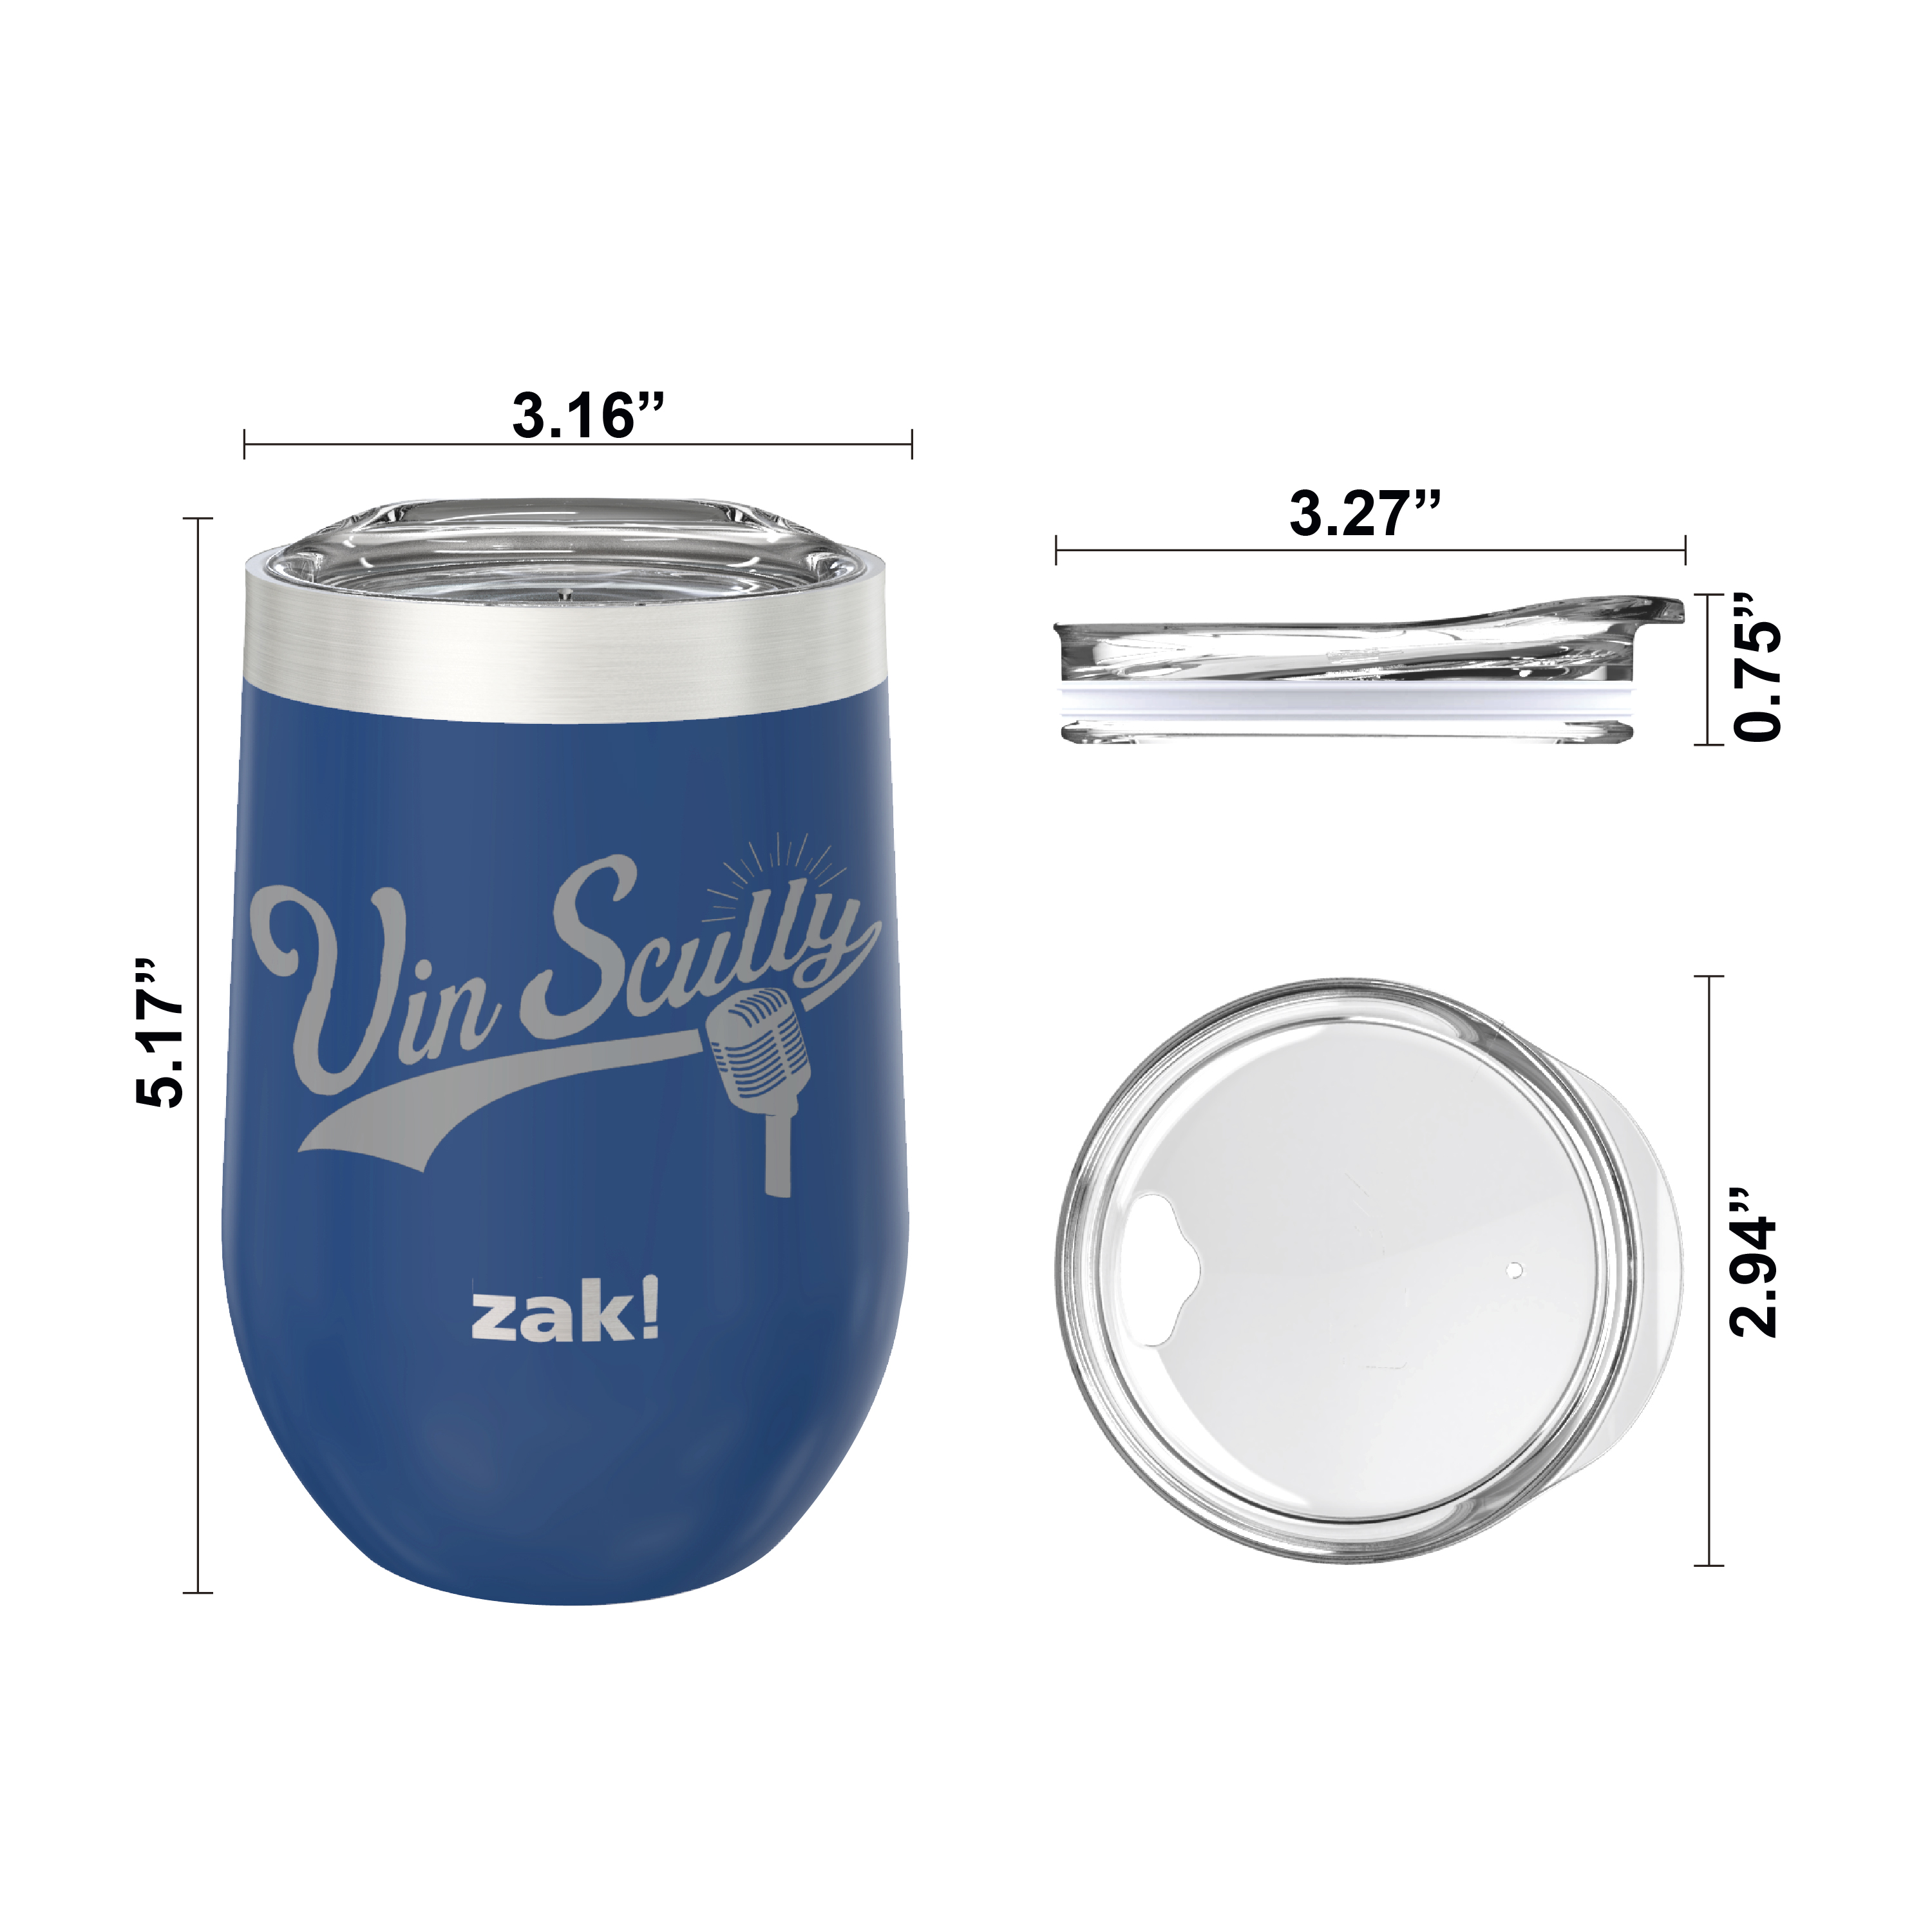 Zak Hydration 11.5 ounce Insulated Stainless Steel Tumbler, Vin Scully, 2-piece set slideshow image 7